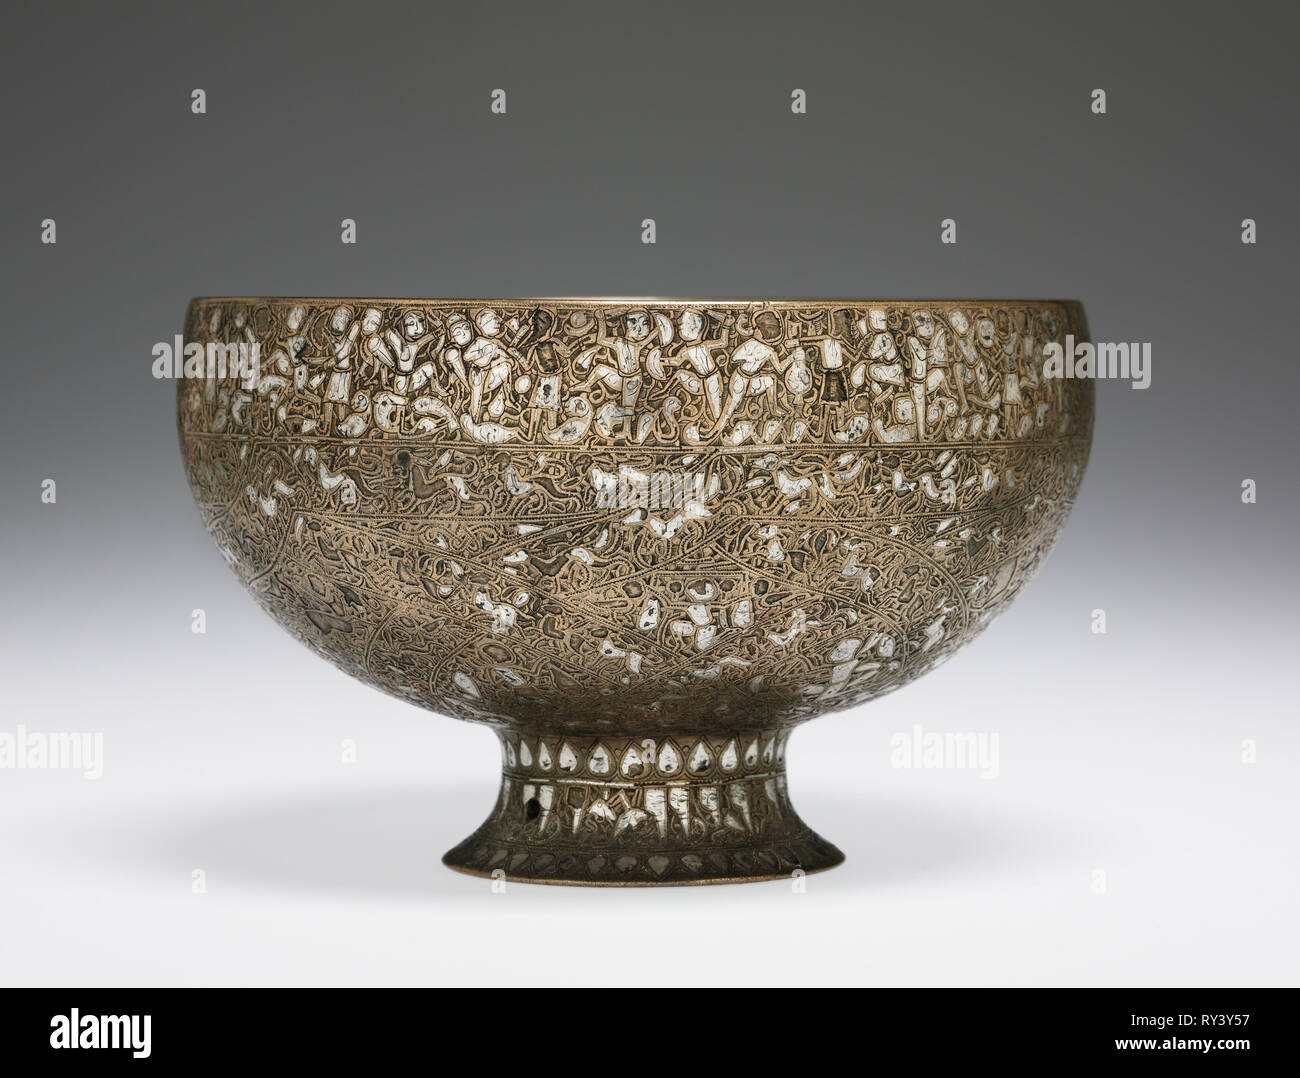 The Wade Cup with Animated Script, 1200-1221. Iran, Seljuk Period, 13th Century. Brass inlaid with silver; diameter: 16.1 cm (6 5/16 in.); overall: 11.5 cm (4 1/2 in - Stock Image